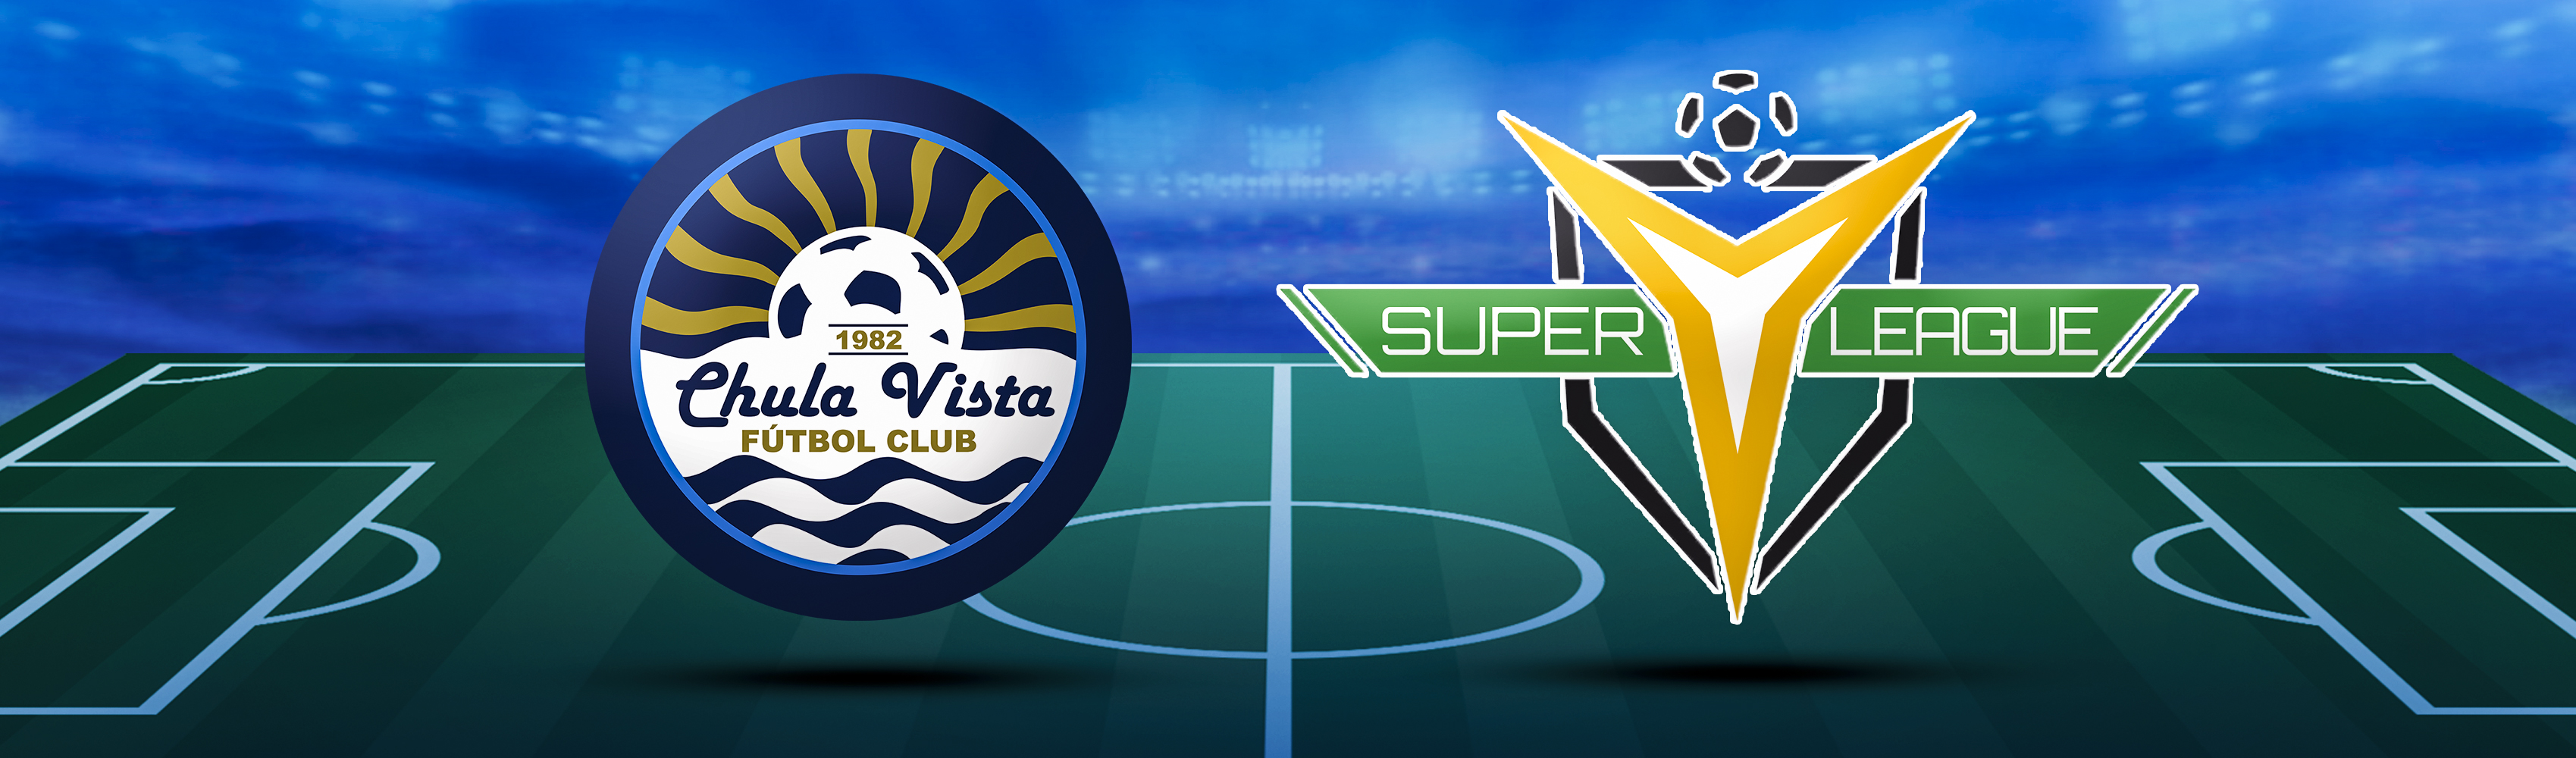 Chula Vista FC joins the Super Y League